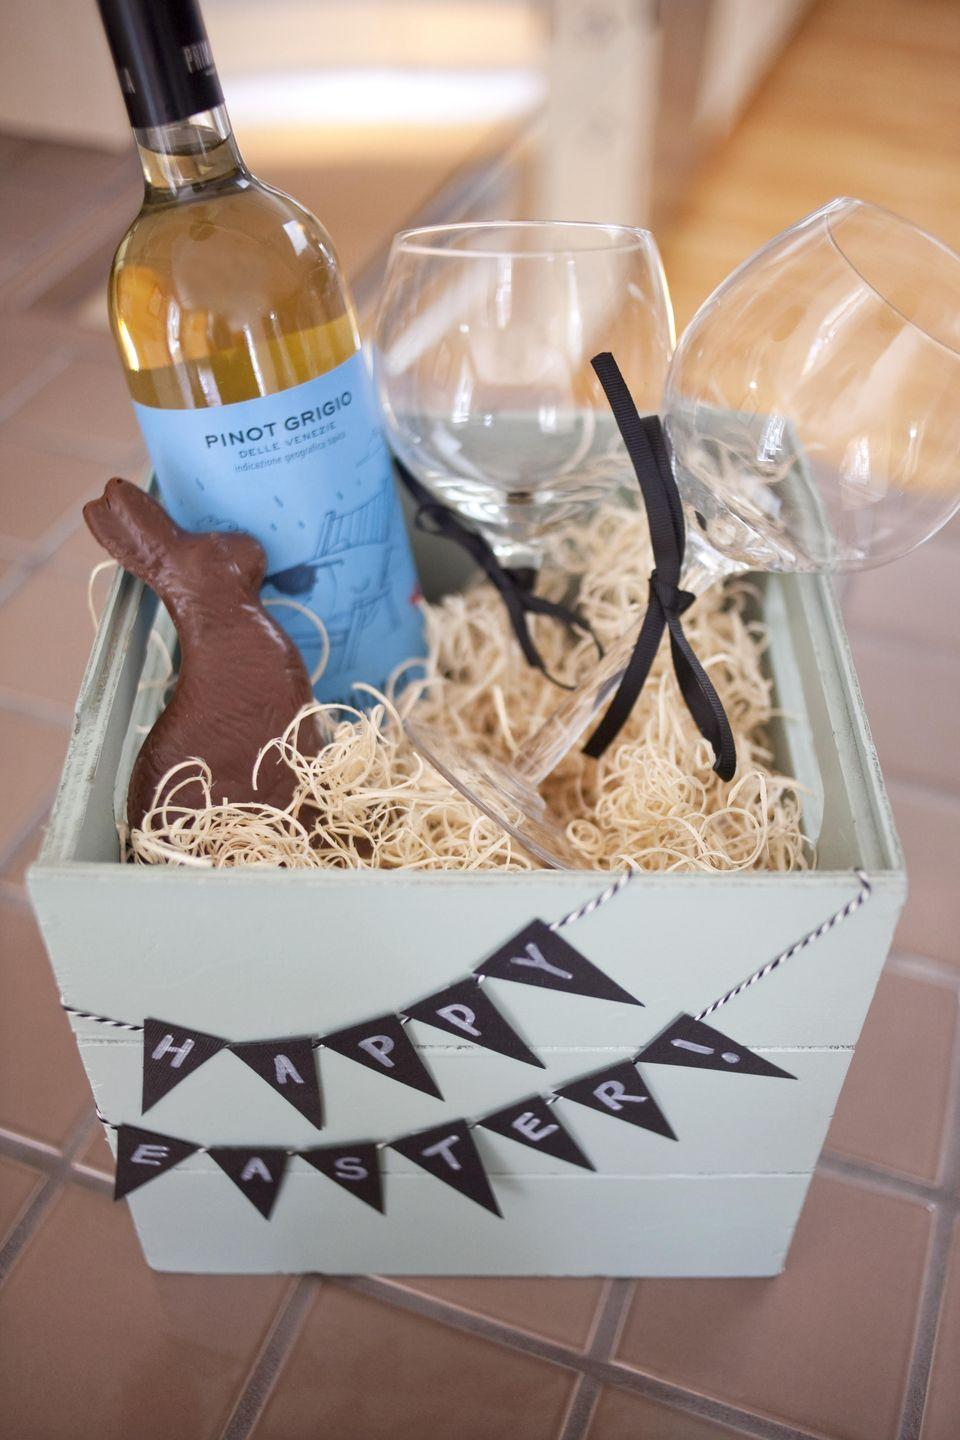 "<p>For a couple, an Easter basket that contains the perfect pair: <a href=""https://www.oprahdaily.com/life/food/g27412334/cheap-wine-brands/"" rel=""nofollow noopener"" target=""_blank"" data-ylk=""slk:wine"" class=""link rapid-noclick-resp"">wine</a> and chocolate. </p><p>Get the tutorial at <a href=""https://www.paperandcake.com/grown-easter-basket/"" rel=""nofollow noopener"" target=""_blank"" data-ylk=""slk:Paper and Cake."" class=""link rapid-noclick-resp"">Paper and Cake.</a></p><p><a class=""link rapid-noclick-resp"" href=""https://www.amazon.com/PARACITY-Glasses-Goblets-Crystal-Stemware/dp/B08GKNR1QL/?tag=syn-yahoo-20&ascsubtag=%5Bartid%7C10072.g.30506642%5Bsrc%7Cyahoo-us"" rel=""nofollow noopener"" target=""_blank"" data-ylk=""slk:SHOP WINE GLASSES"">SHOP WINE GLASSES</a></p>"